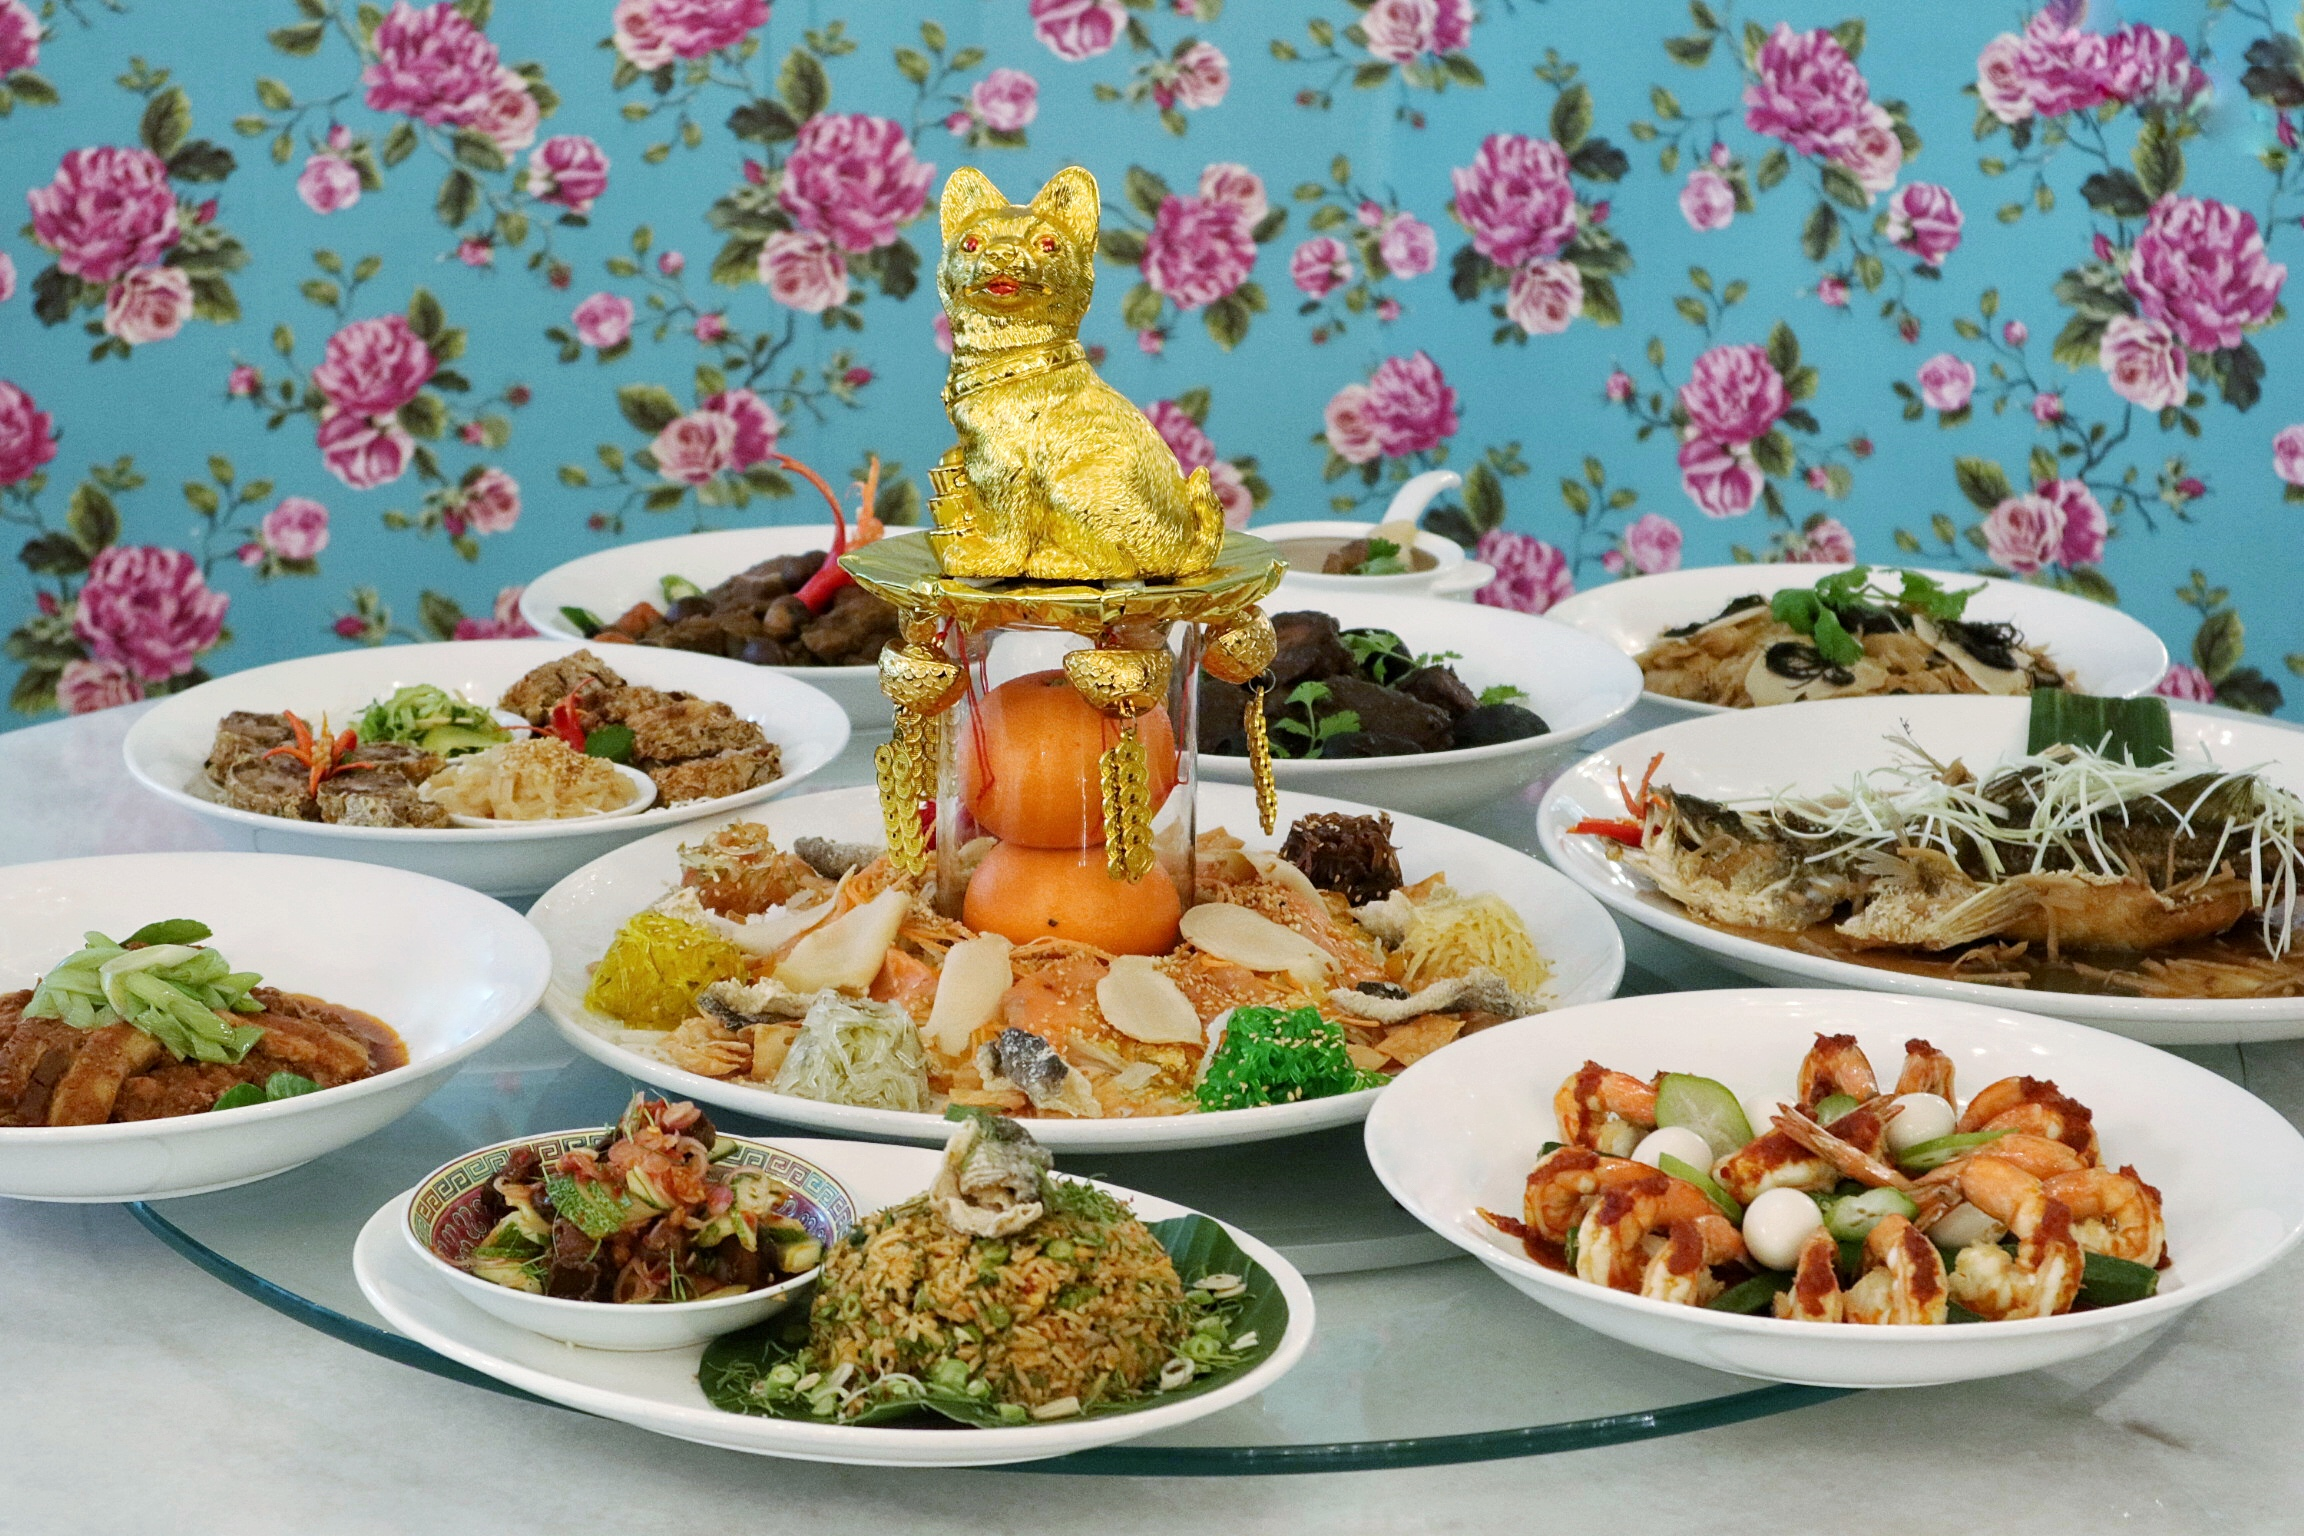 The Peranakan Restaurant Singapore: Welcome Puppy Year with Sumptuous Peranakan Feast